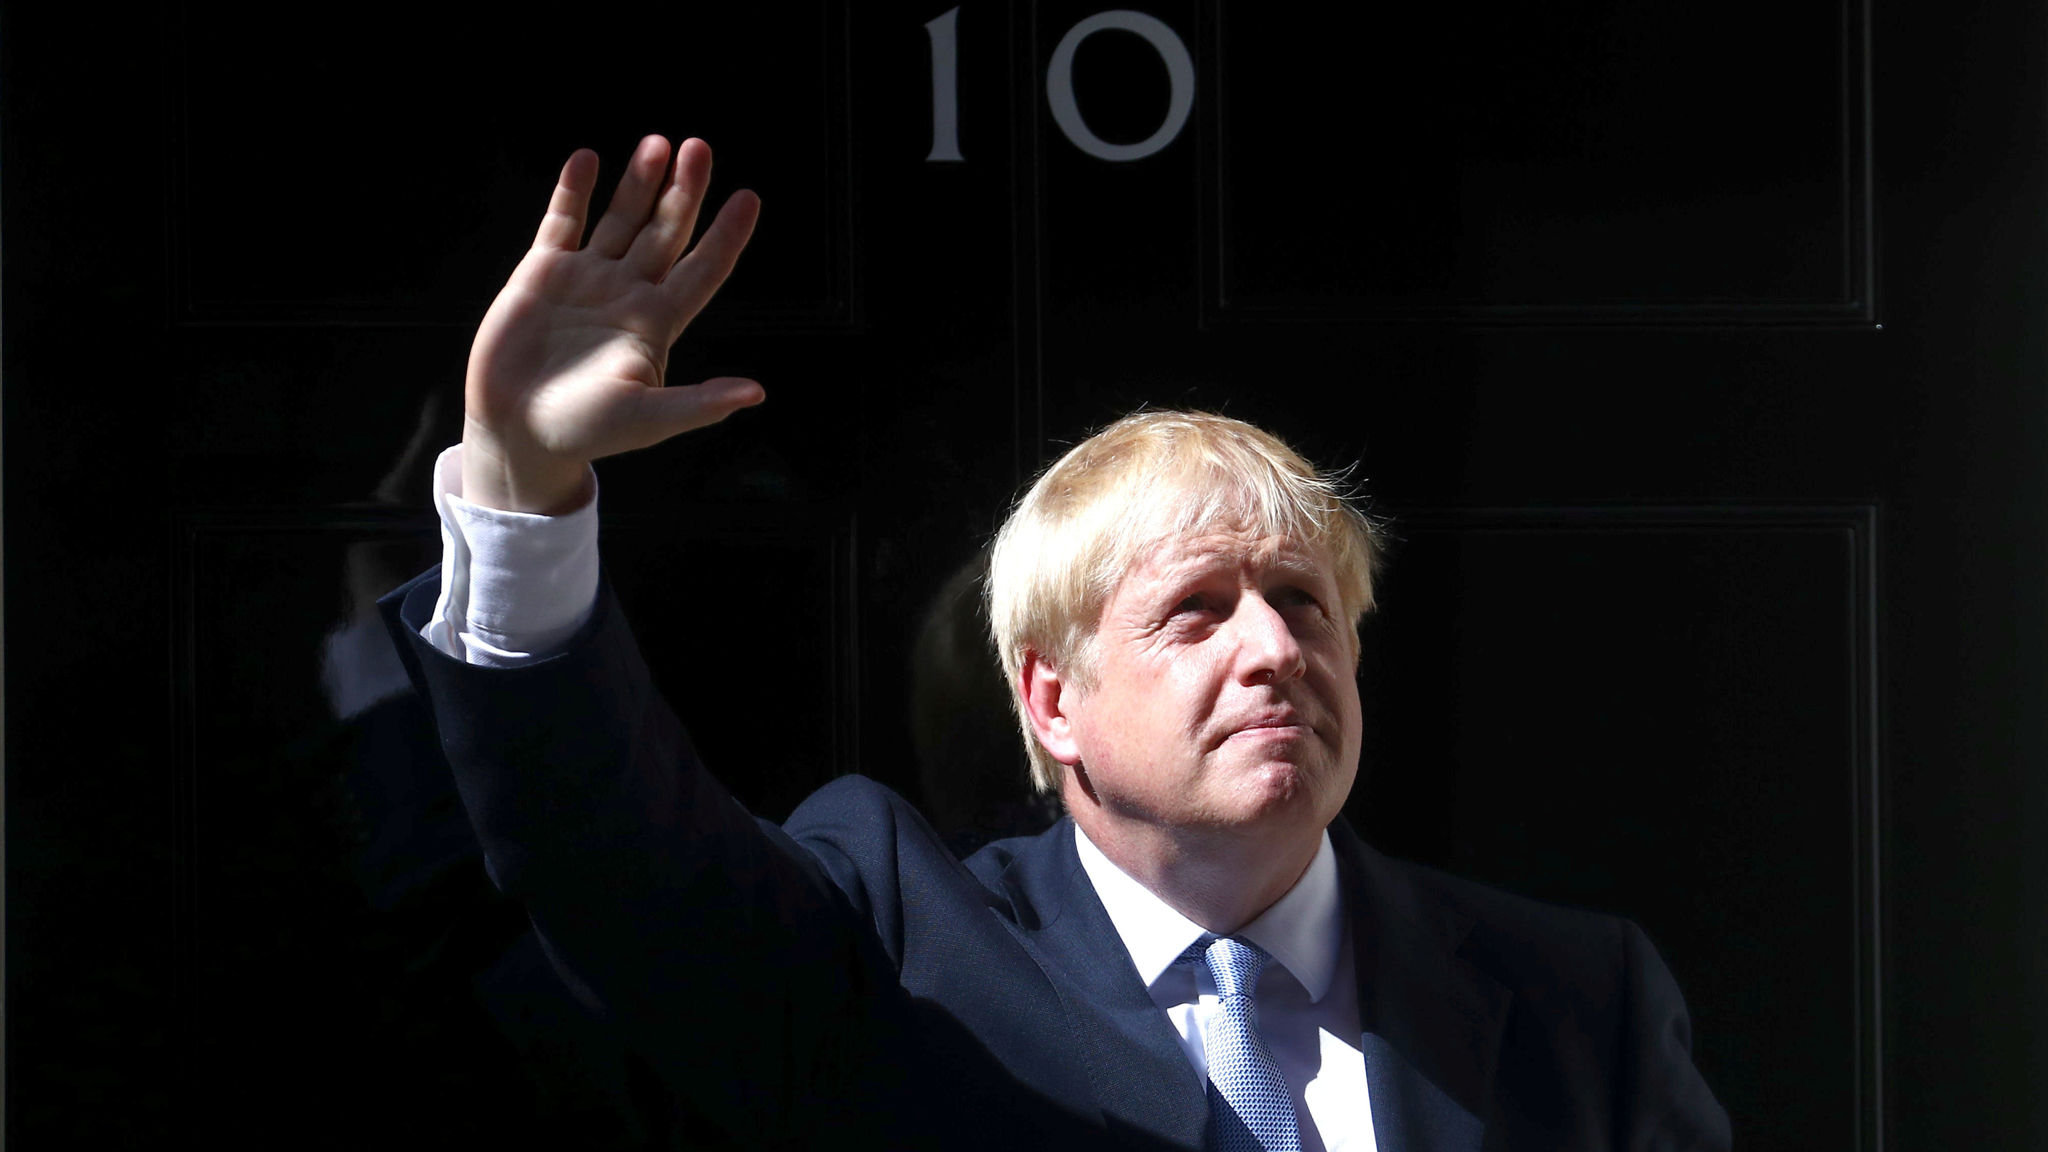 This image shows Boris Johnson standing and waving outside of 10 Downing Street when he was elected the new primeminster of the UK in 2019.